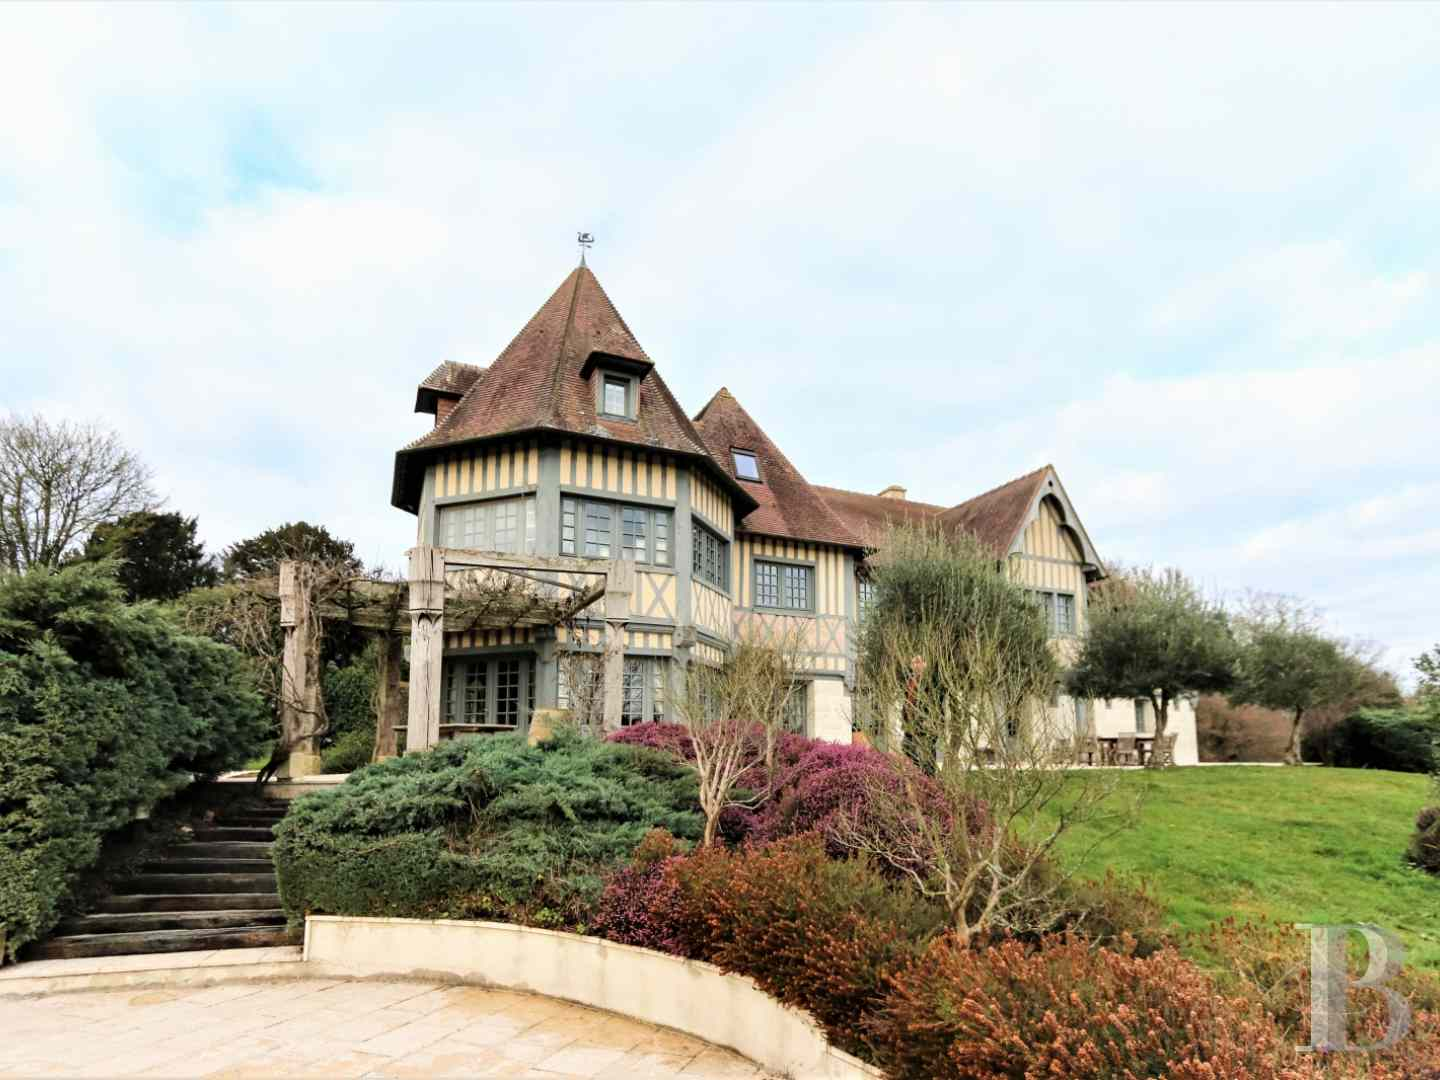 France mansions for sale lower normandy manors equestrian - 2 zoom